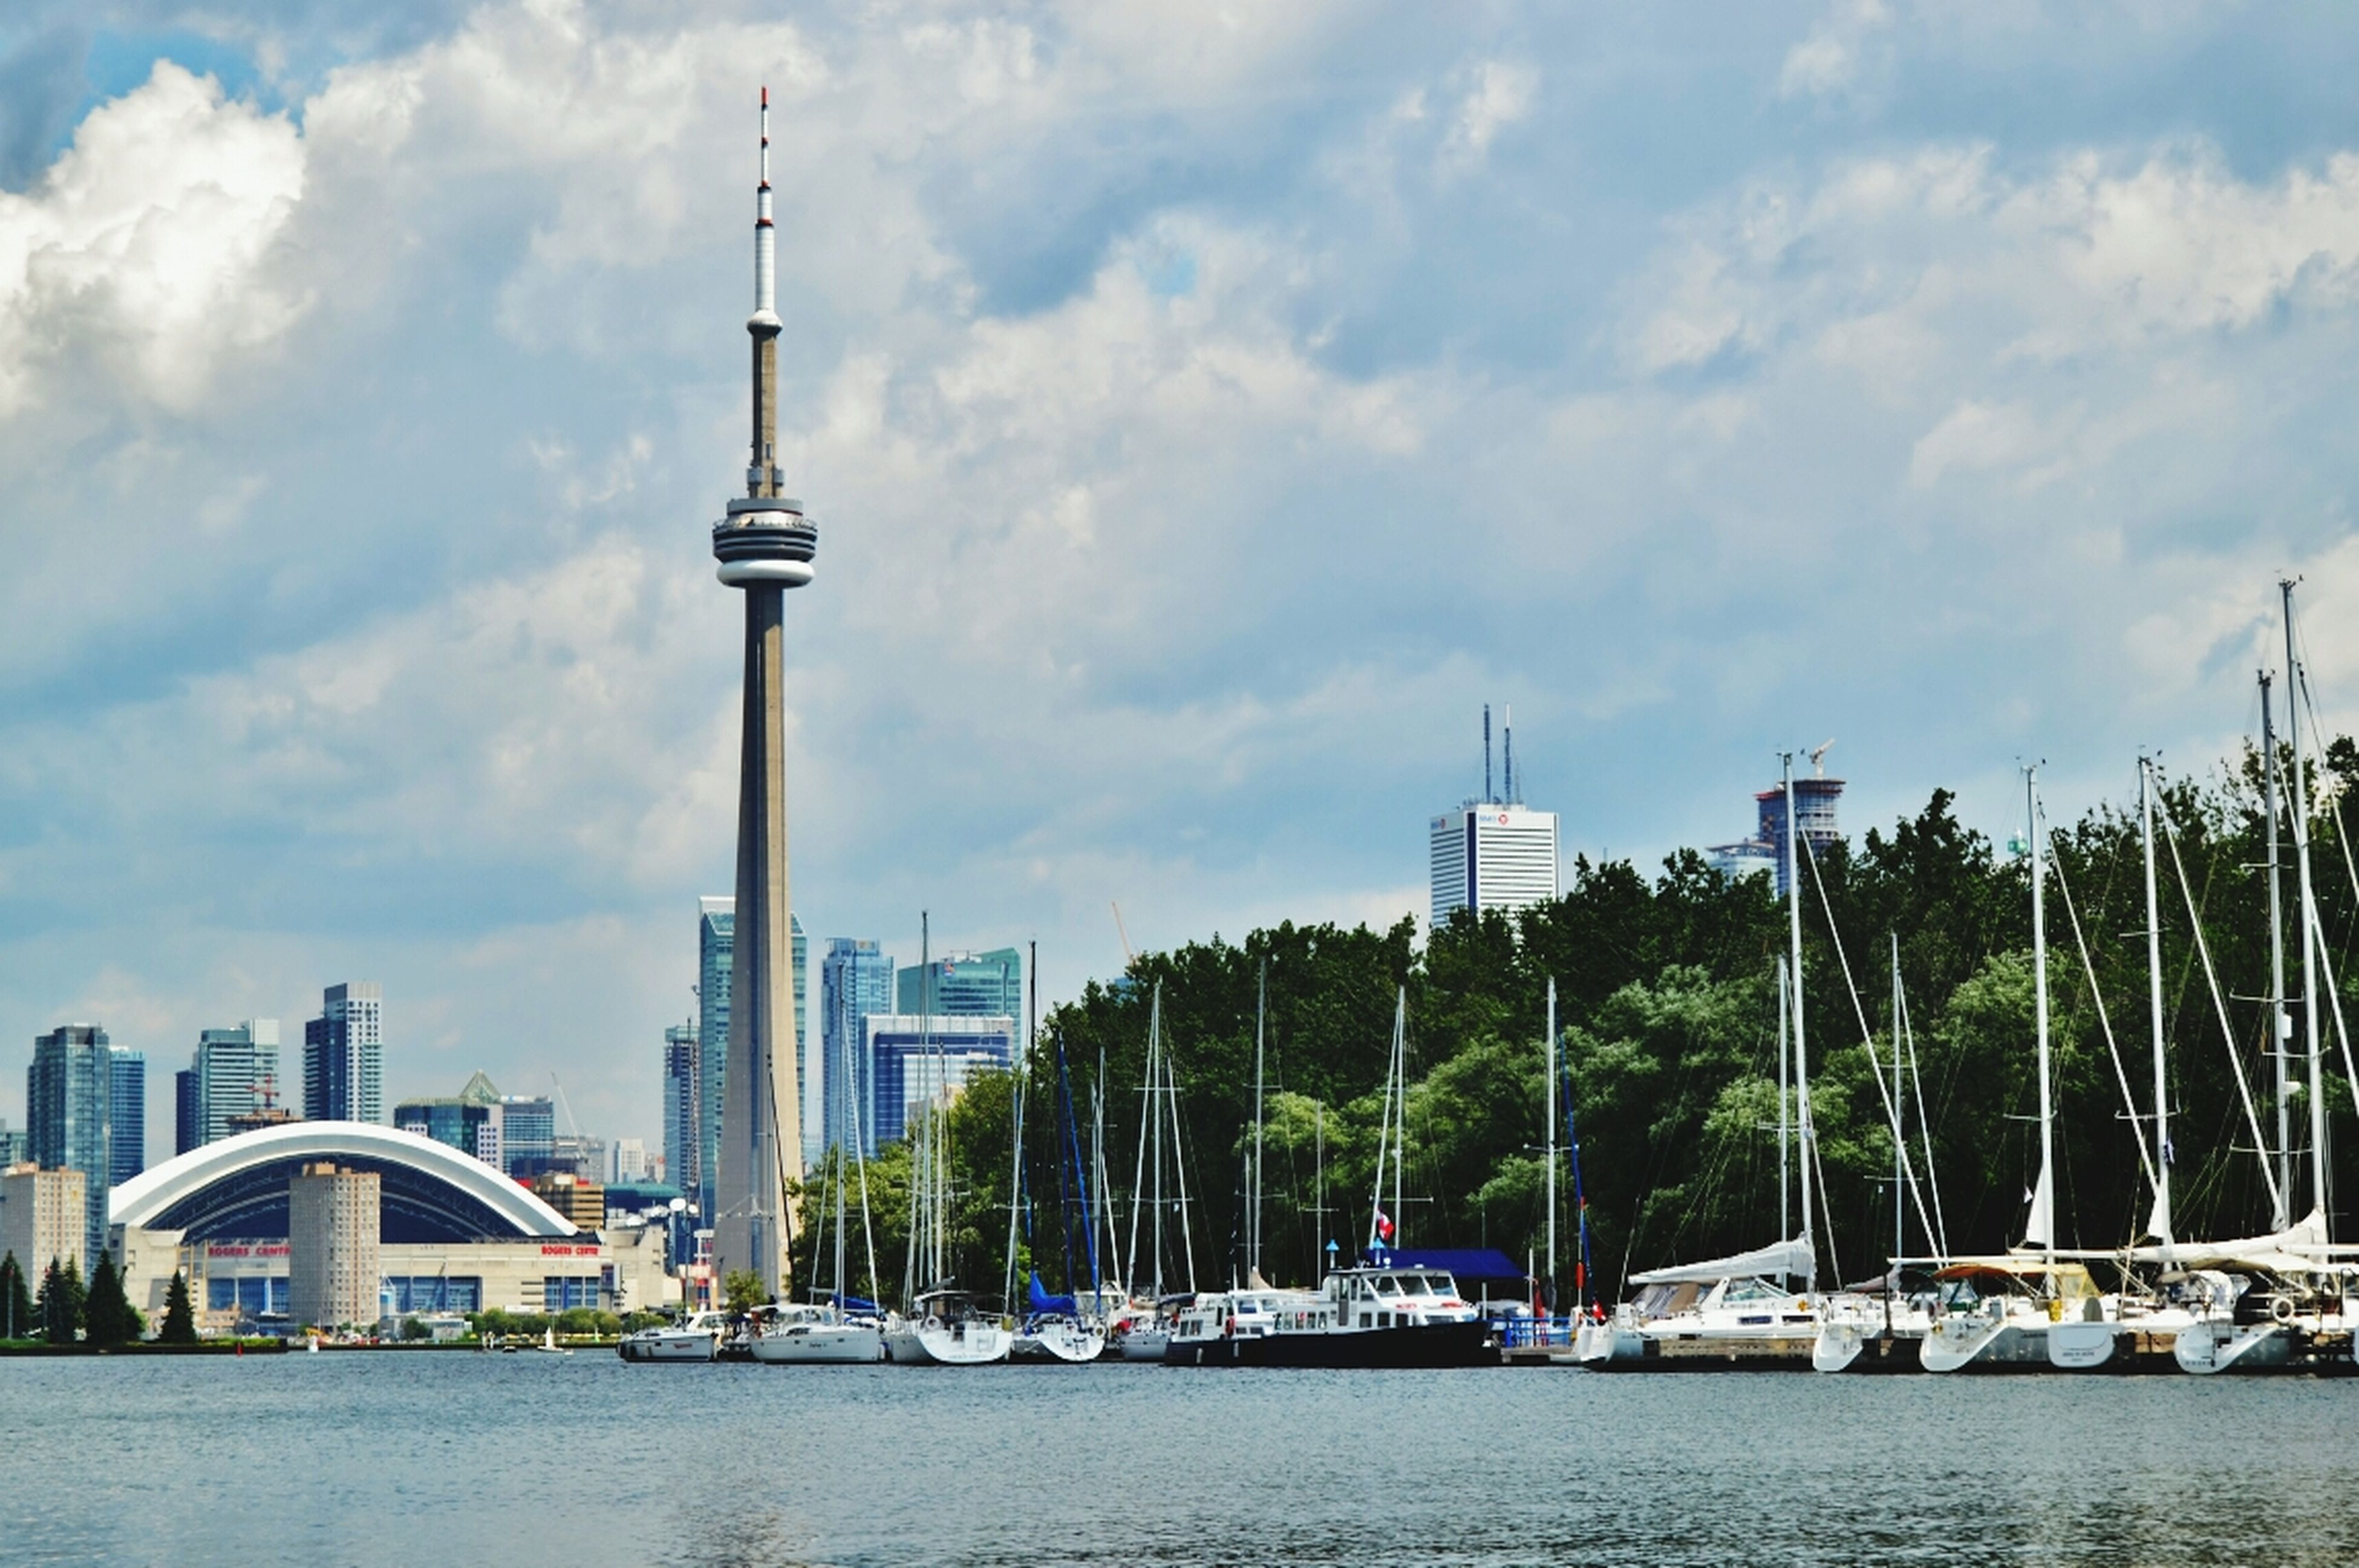 building exterior, architecture, built structure, sky, water, city, tower, waterfront, cloud - sky, tall - high, river, tree, cityscape, sea, cloud, nautical vessel, skyscraper, travel destinations, cloudy, day